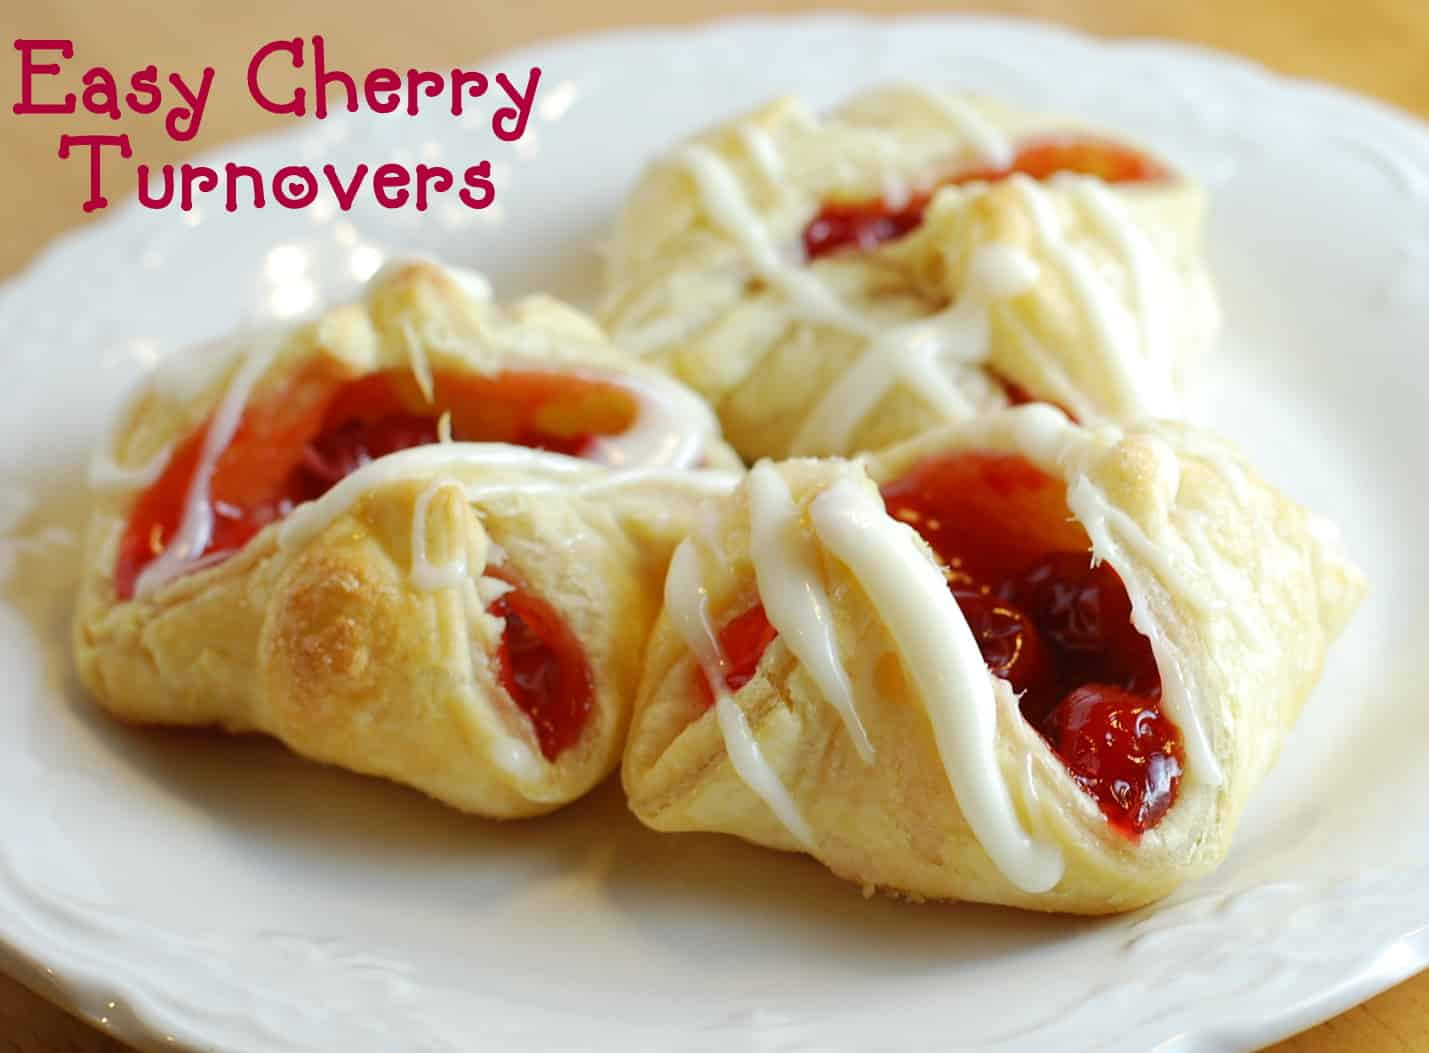 Easy Puff Pastry Desserts  Easy Cherry Turnovers with Puff Pastry